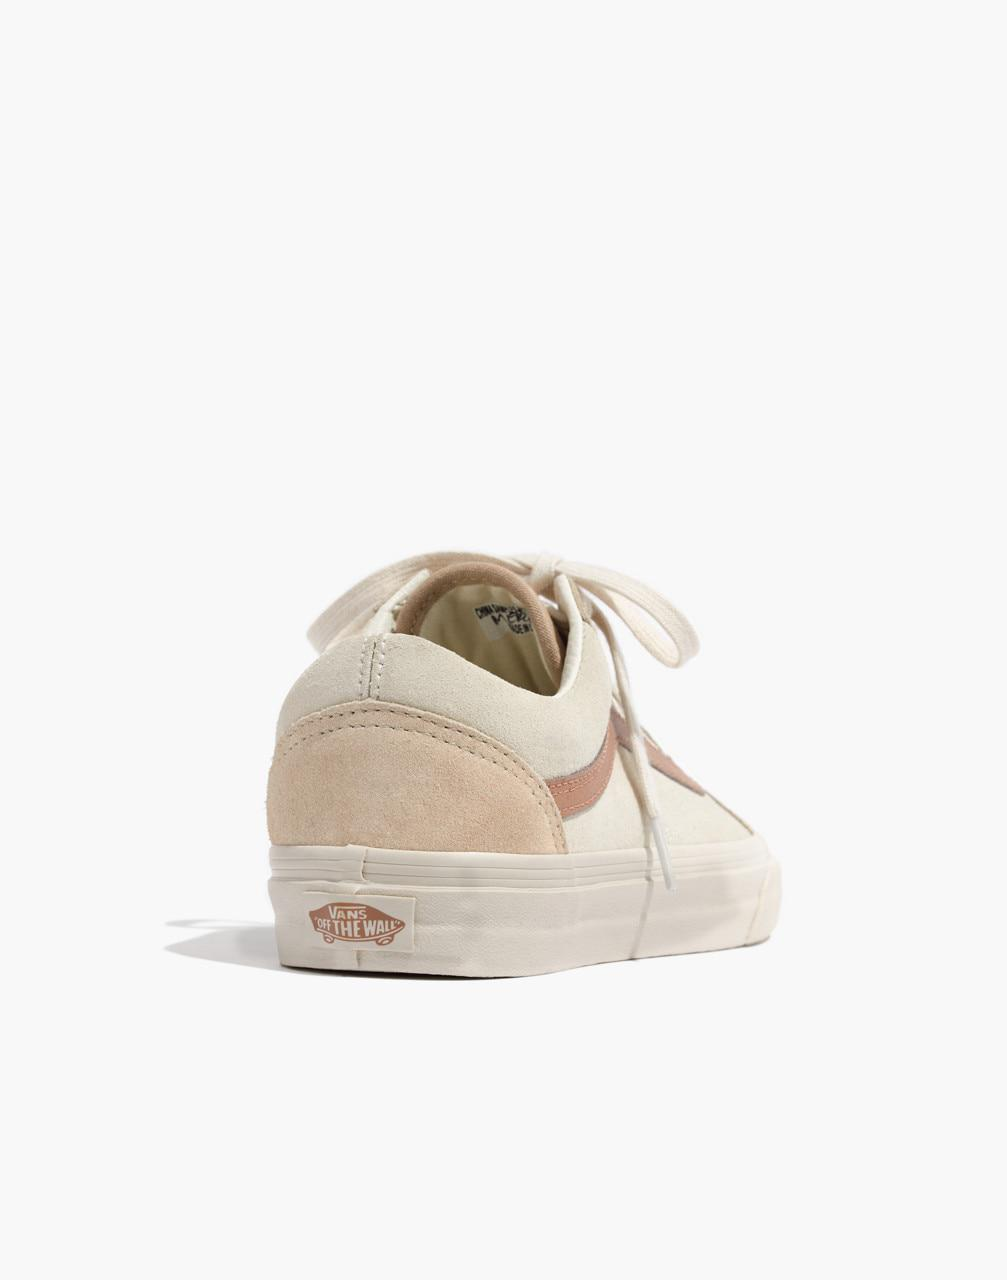 e68bbdd02a Lyst - Madewell X Vans Unisex Old Skool Lace-up Sneakers In Camel ...